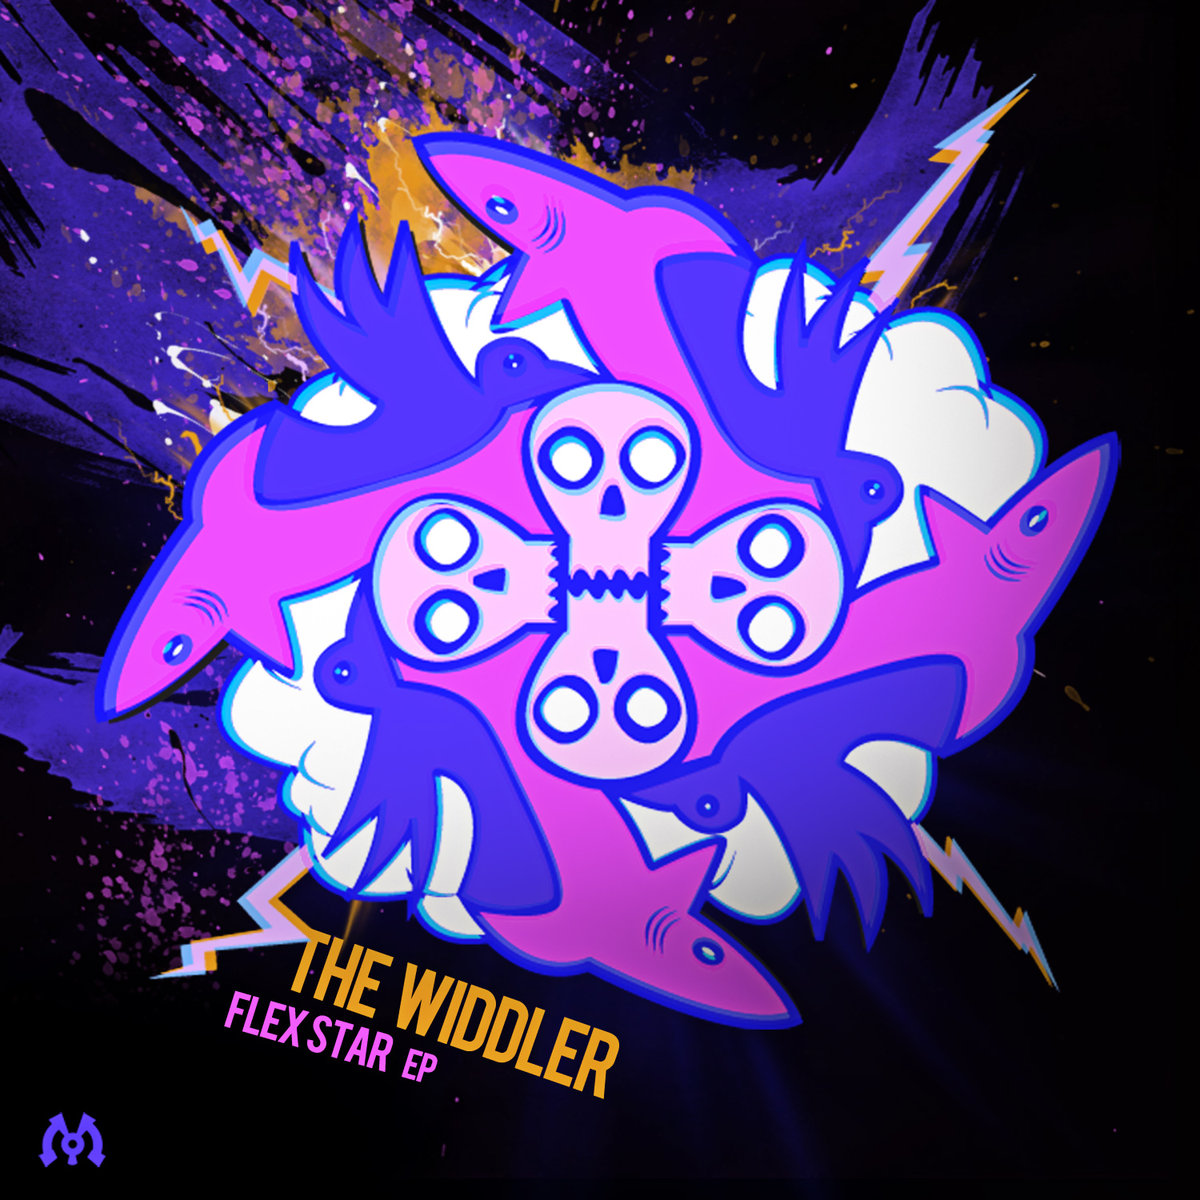 The Widdler - Flexstar